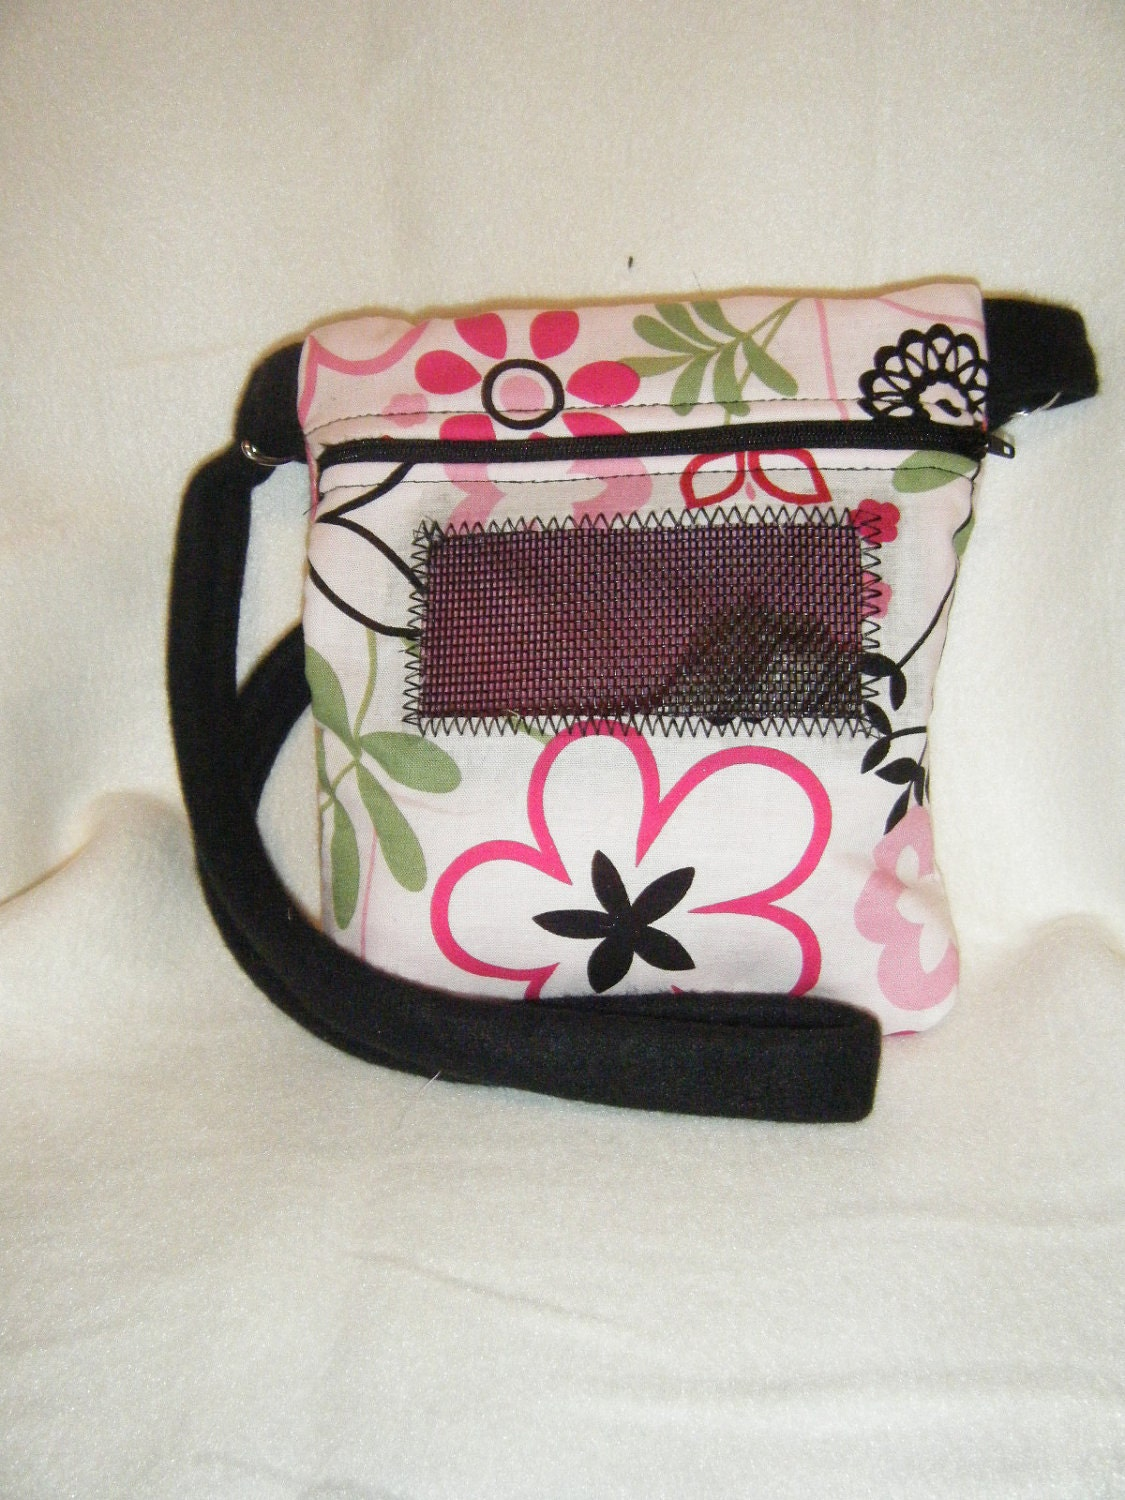 Sugar Glider/ Small Animal Bonding Pouch